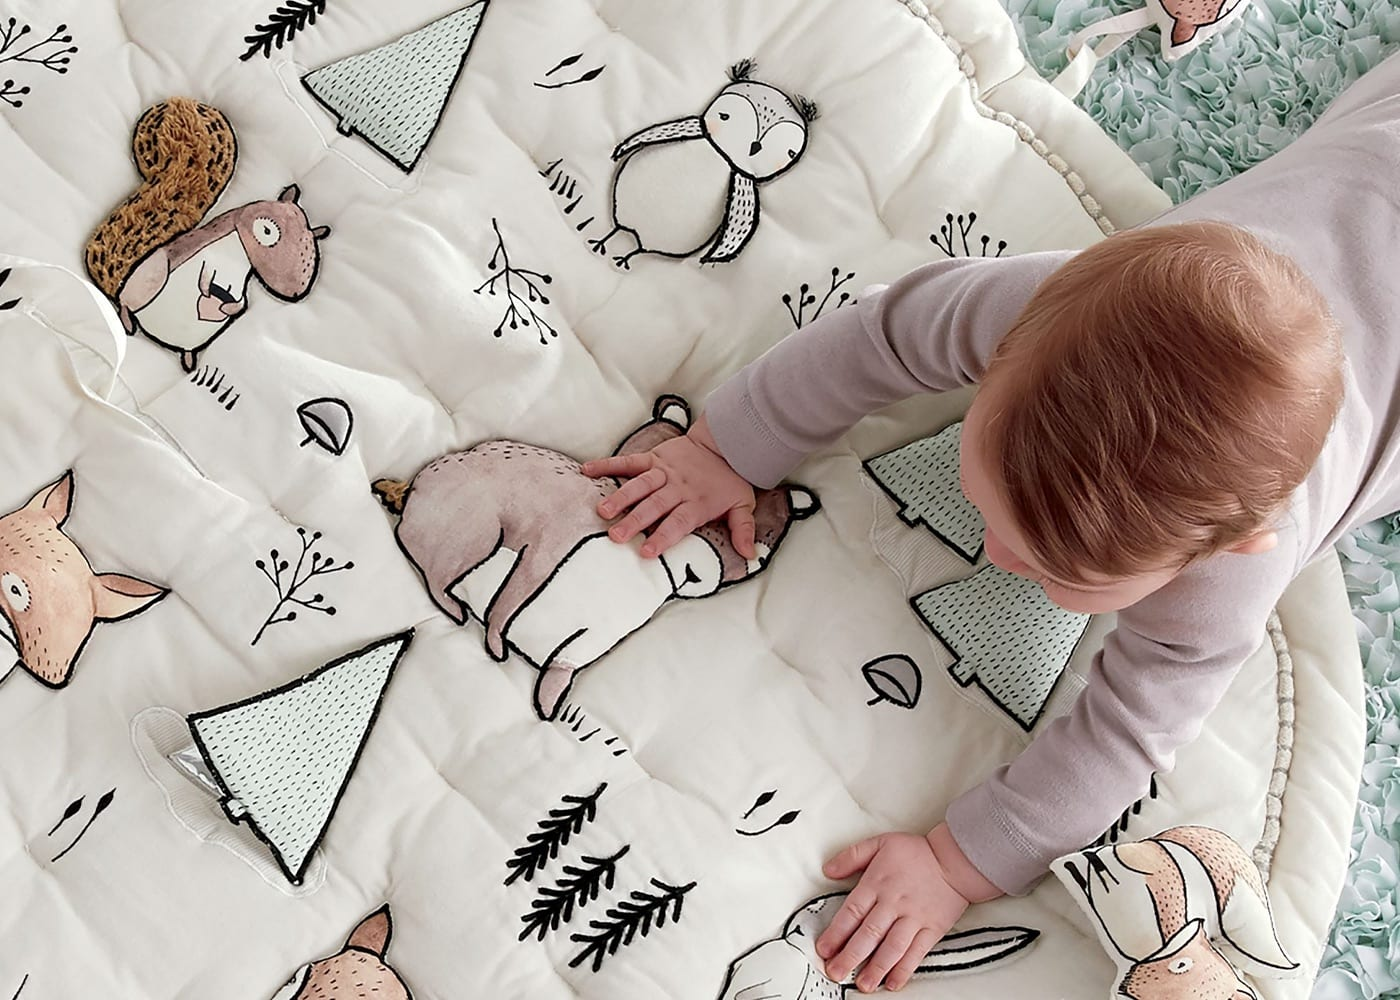 Crate and Barrel's kids' line is giving us major heart eyes